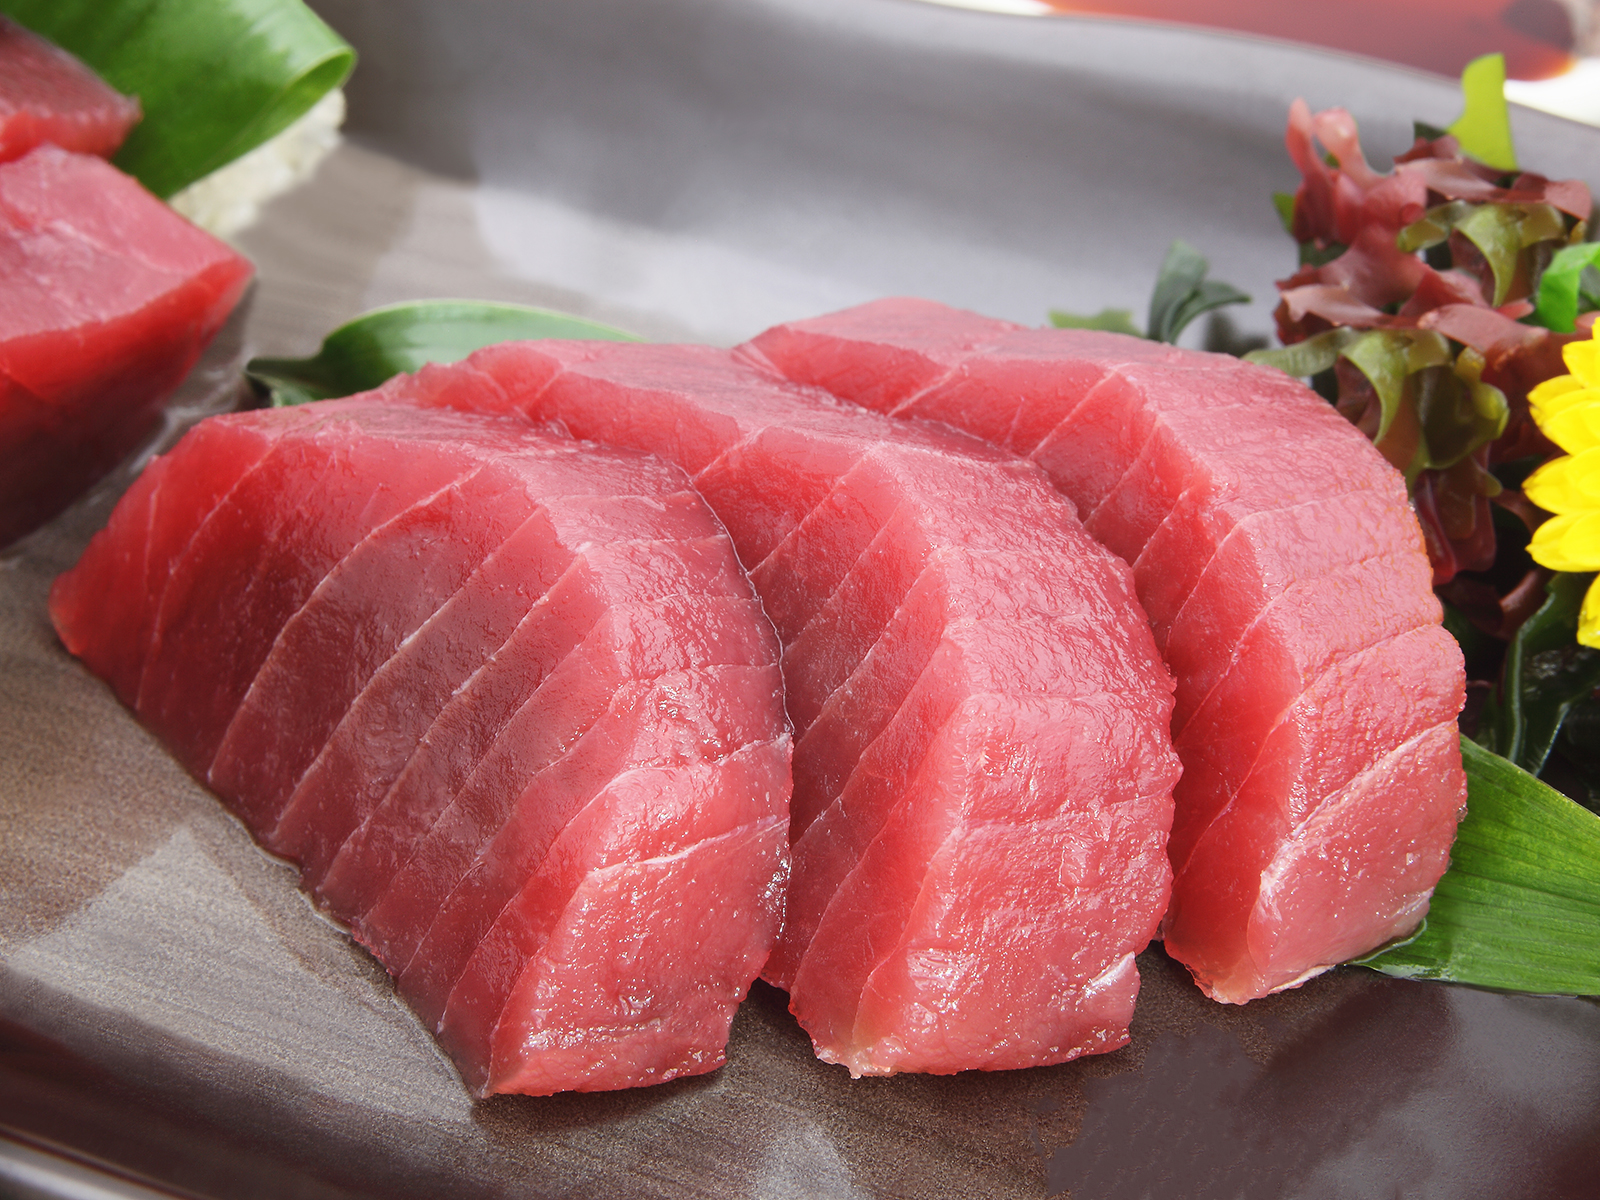 A New Database Could Cut Down on Fish Fraud